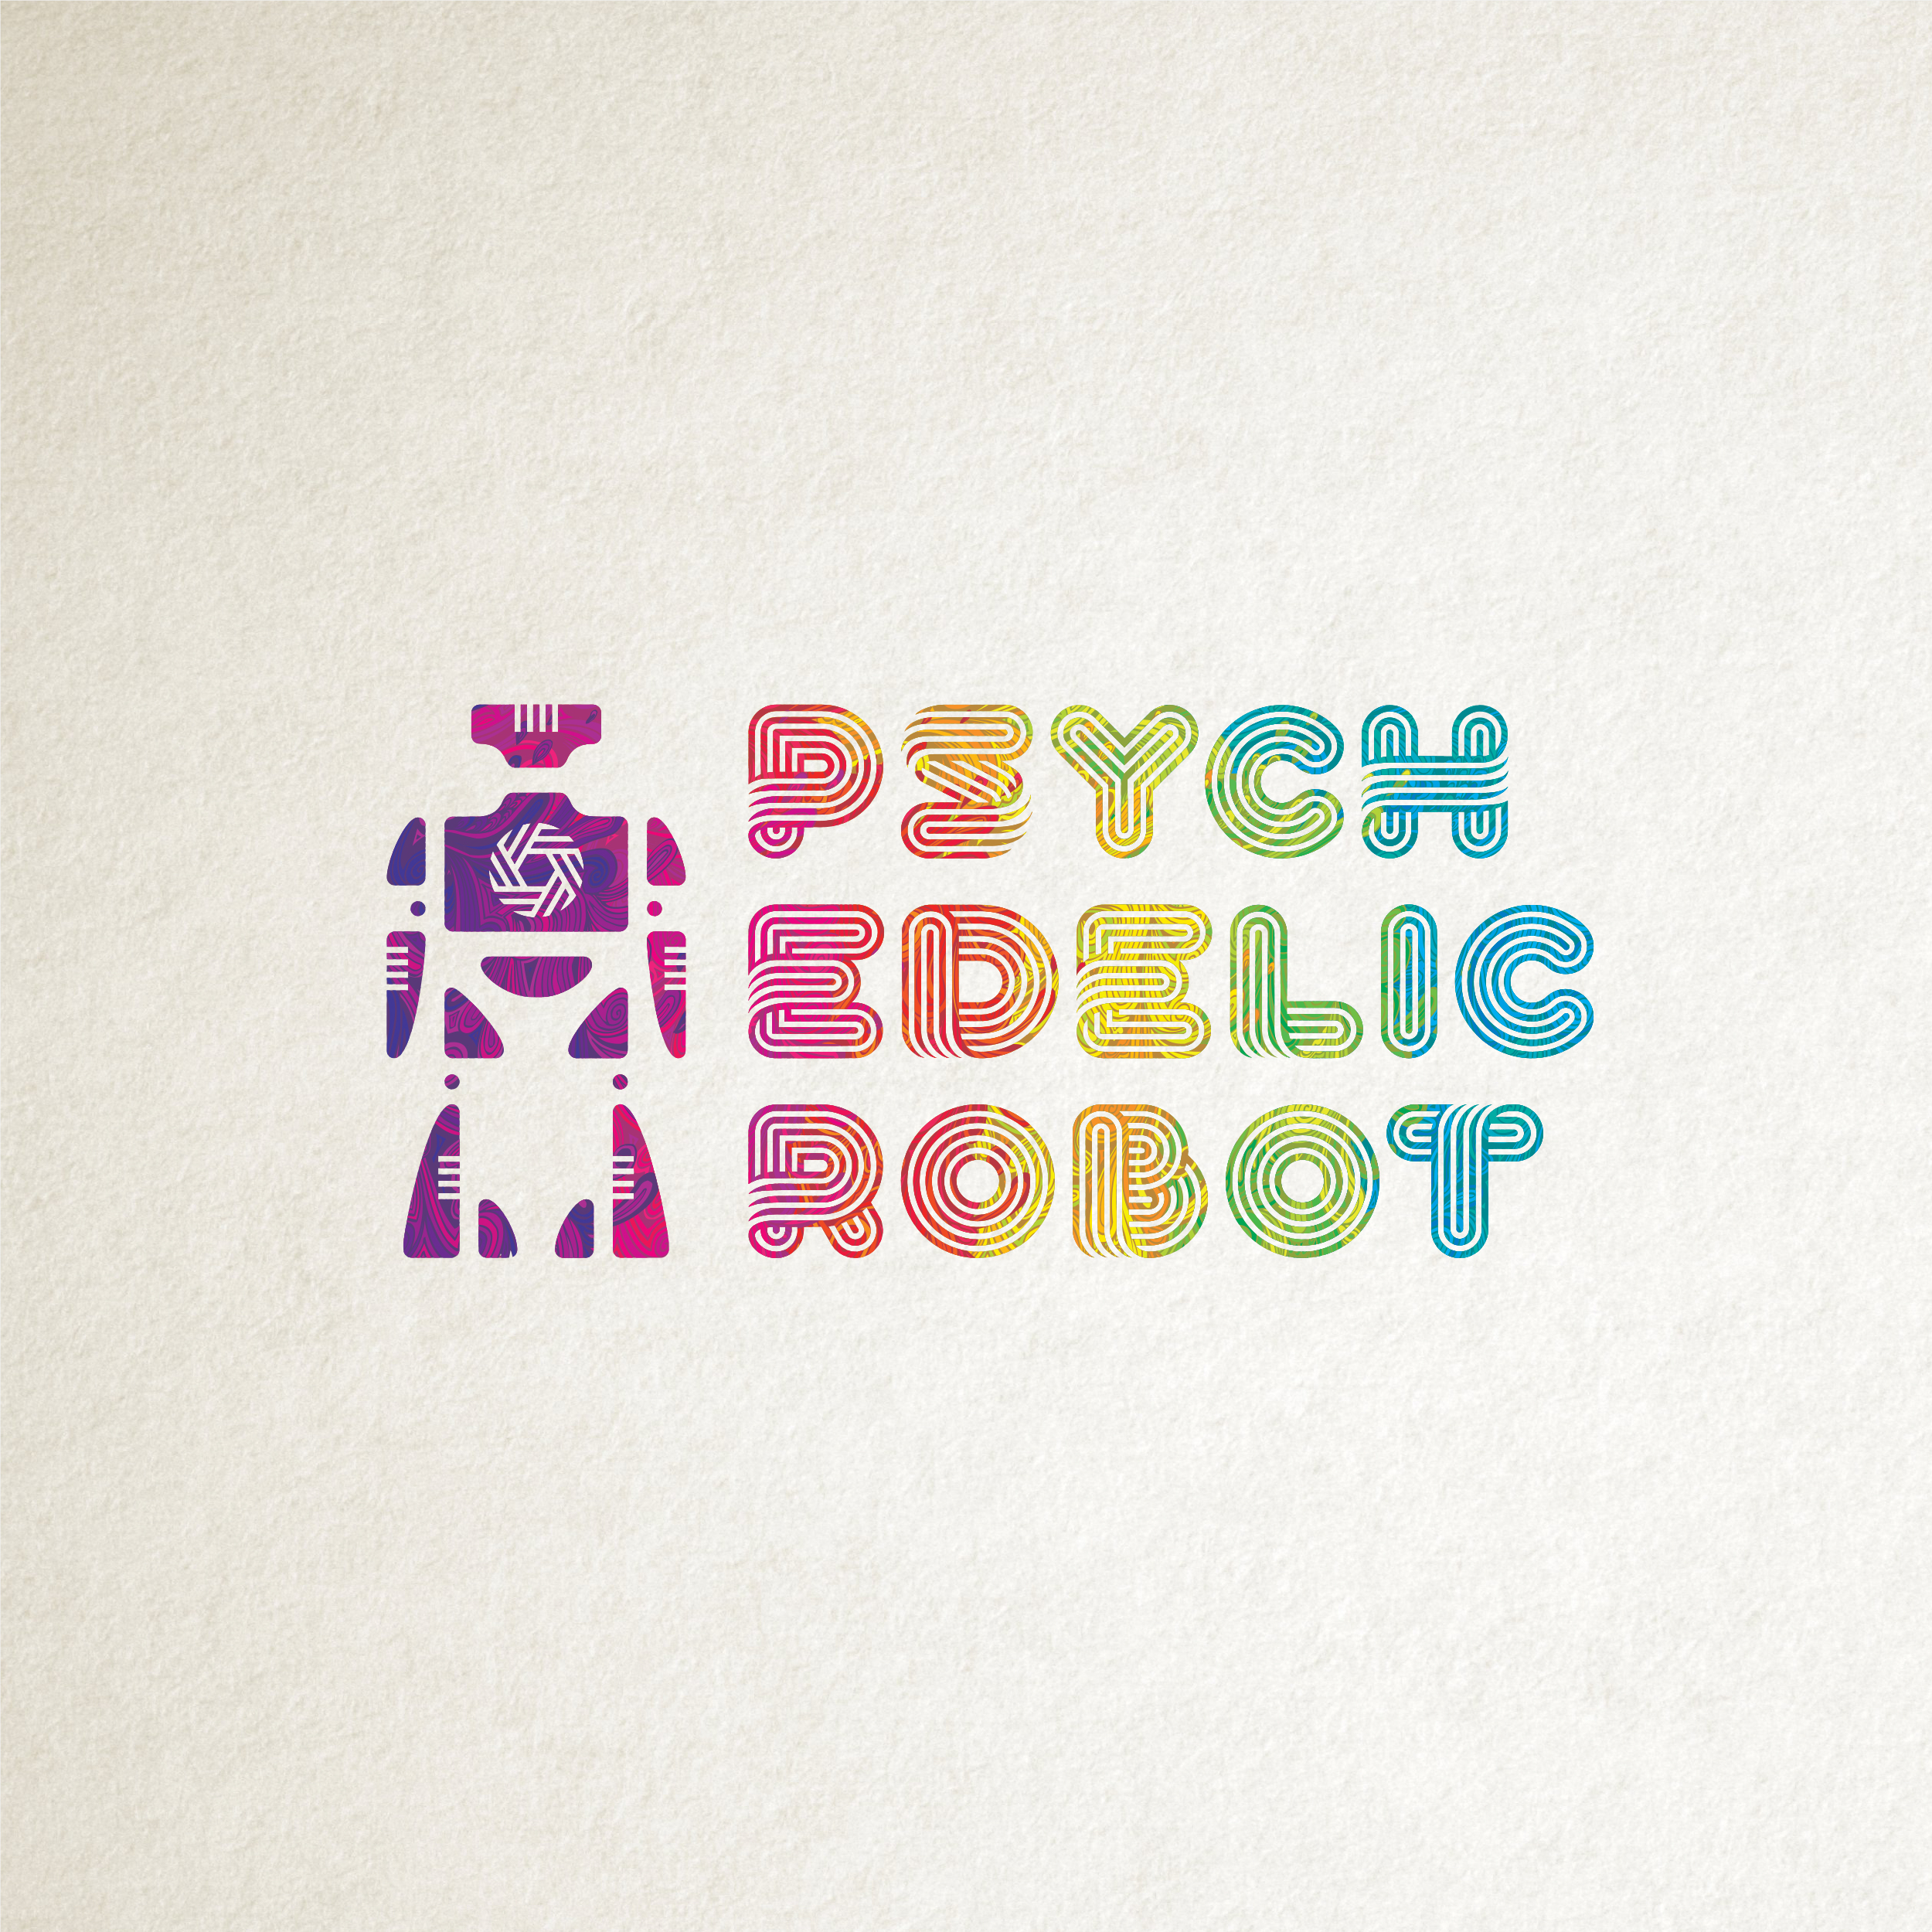 Psychedelic Robot multi-colored logo